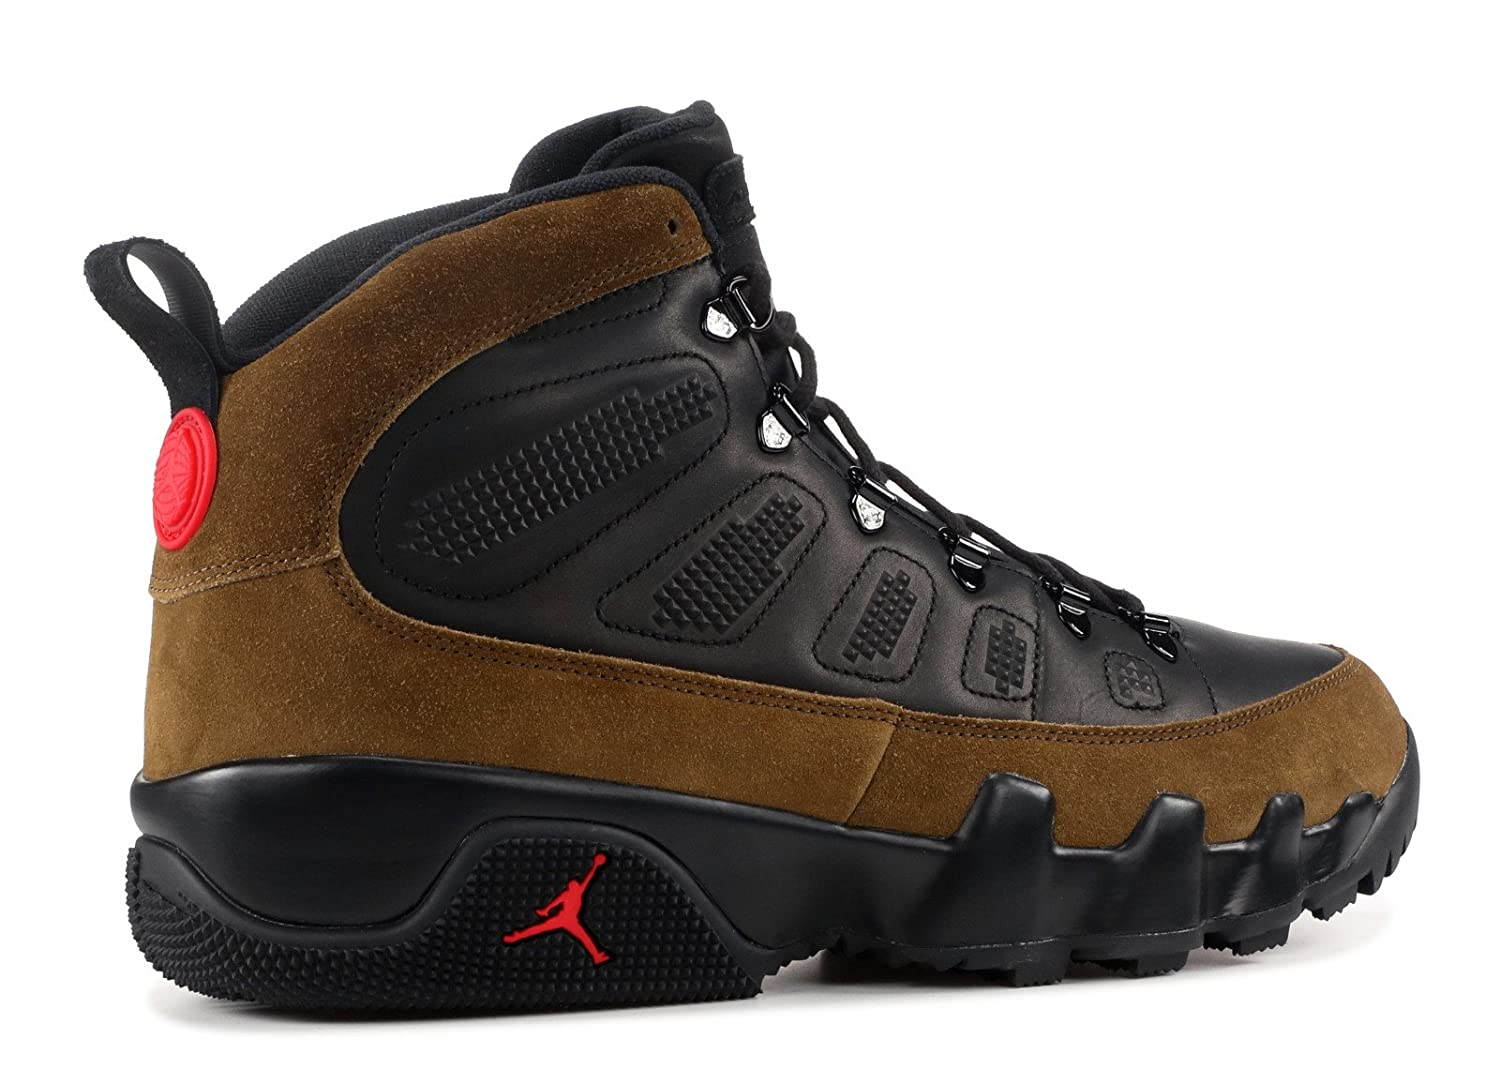 pretty nice 7cfe3 23d39 AIR JORDAN 9 Retro Boot NRG - AR4491-012: Amazon.co.uk ...